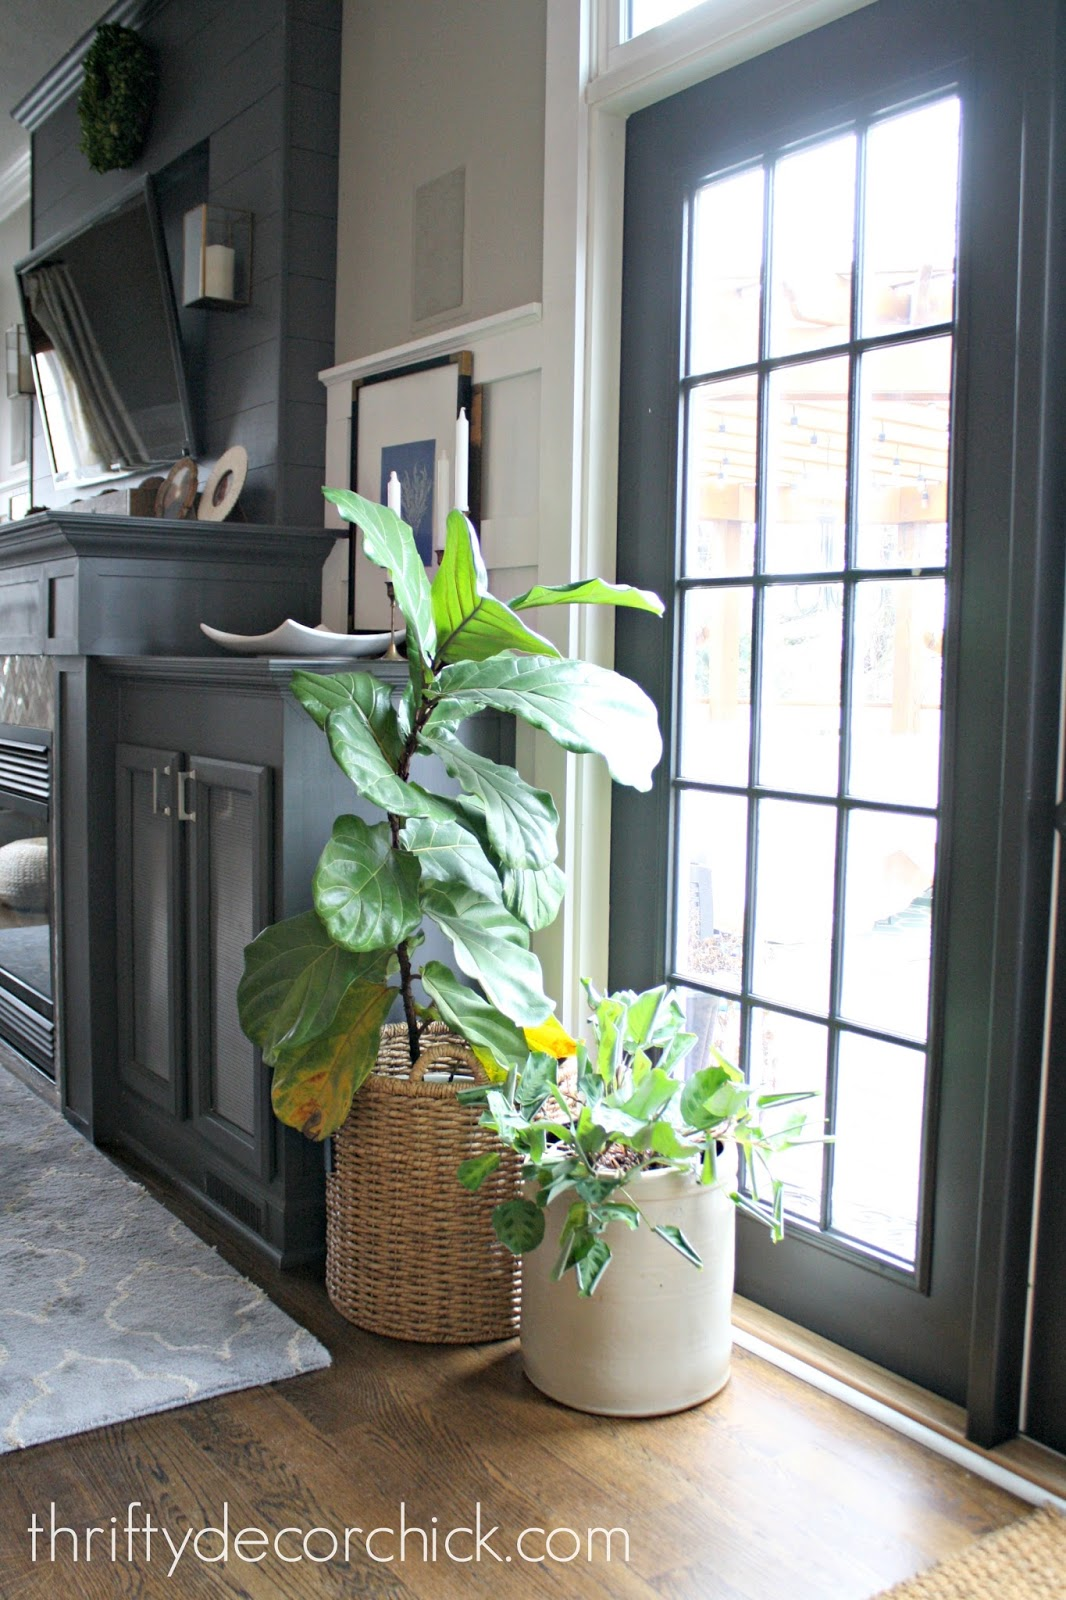 How To Not Kill Your Fiddle Leaf Plant From Thrifty Decor